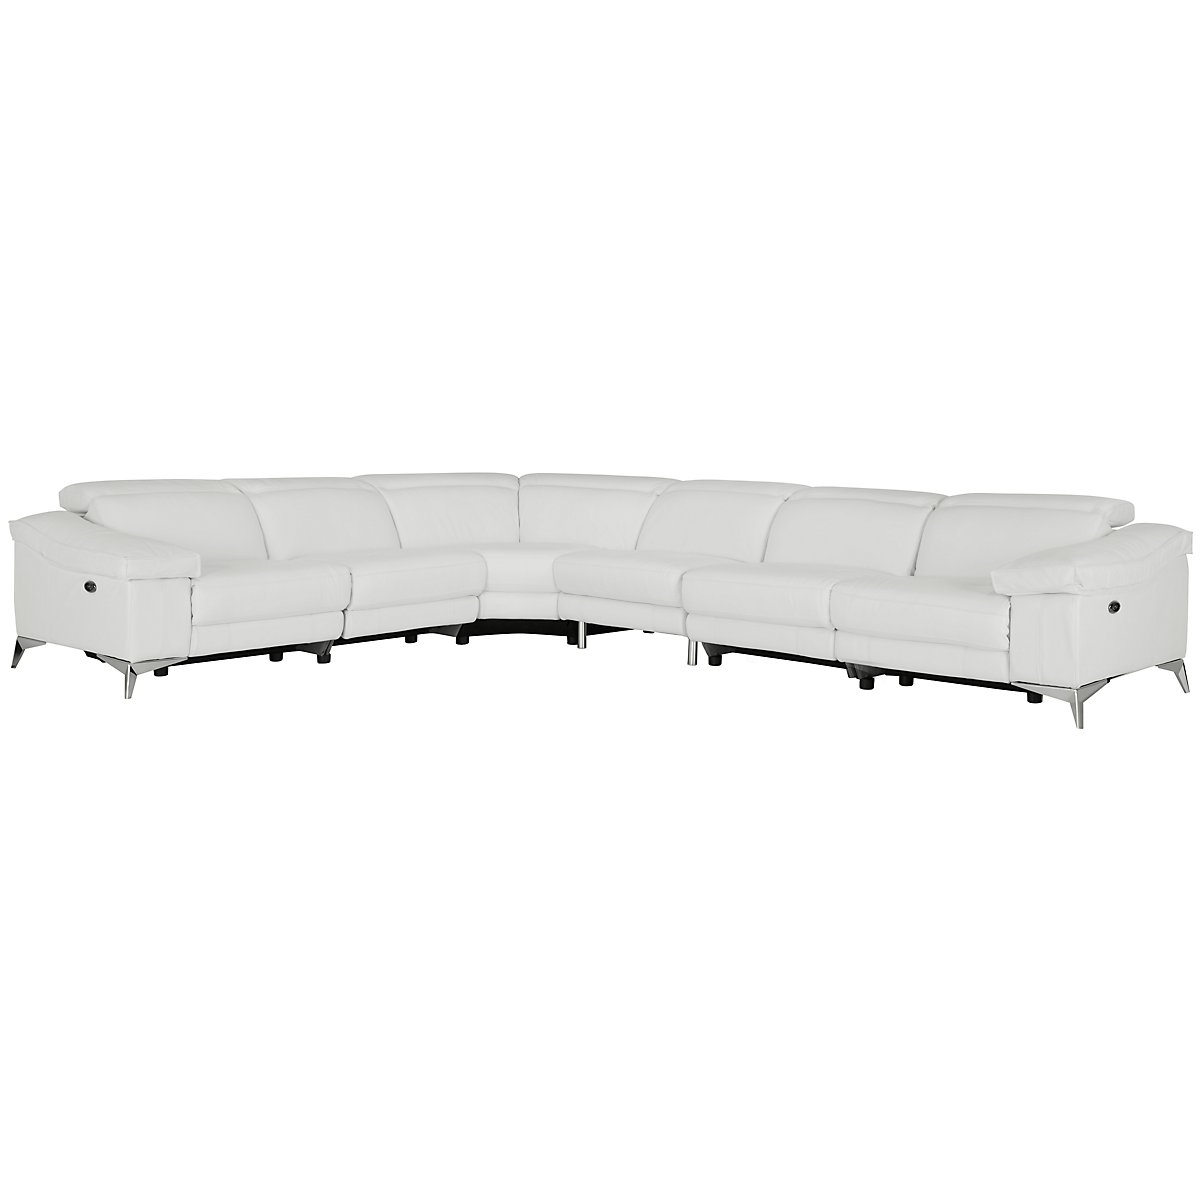 hd nice outstanding amazing couch sofa wallpaper ideas best white full leather good reclining sectional